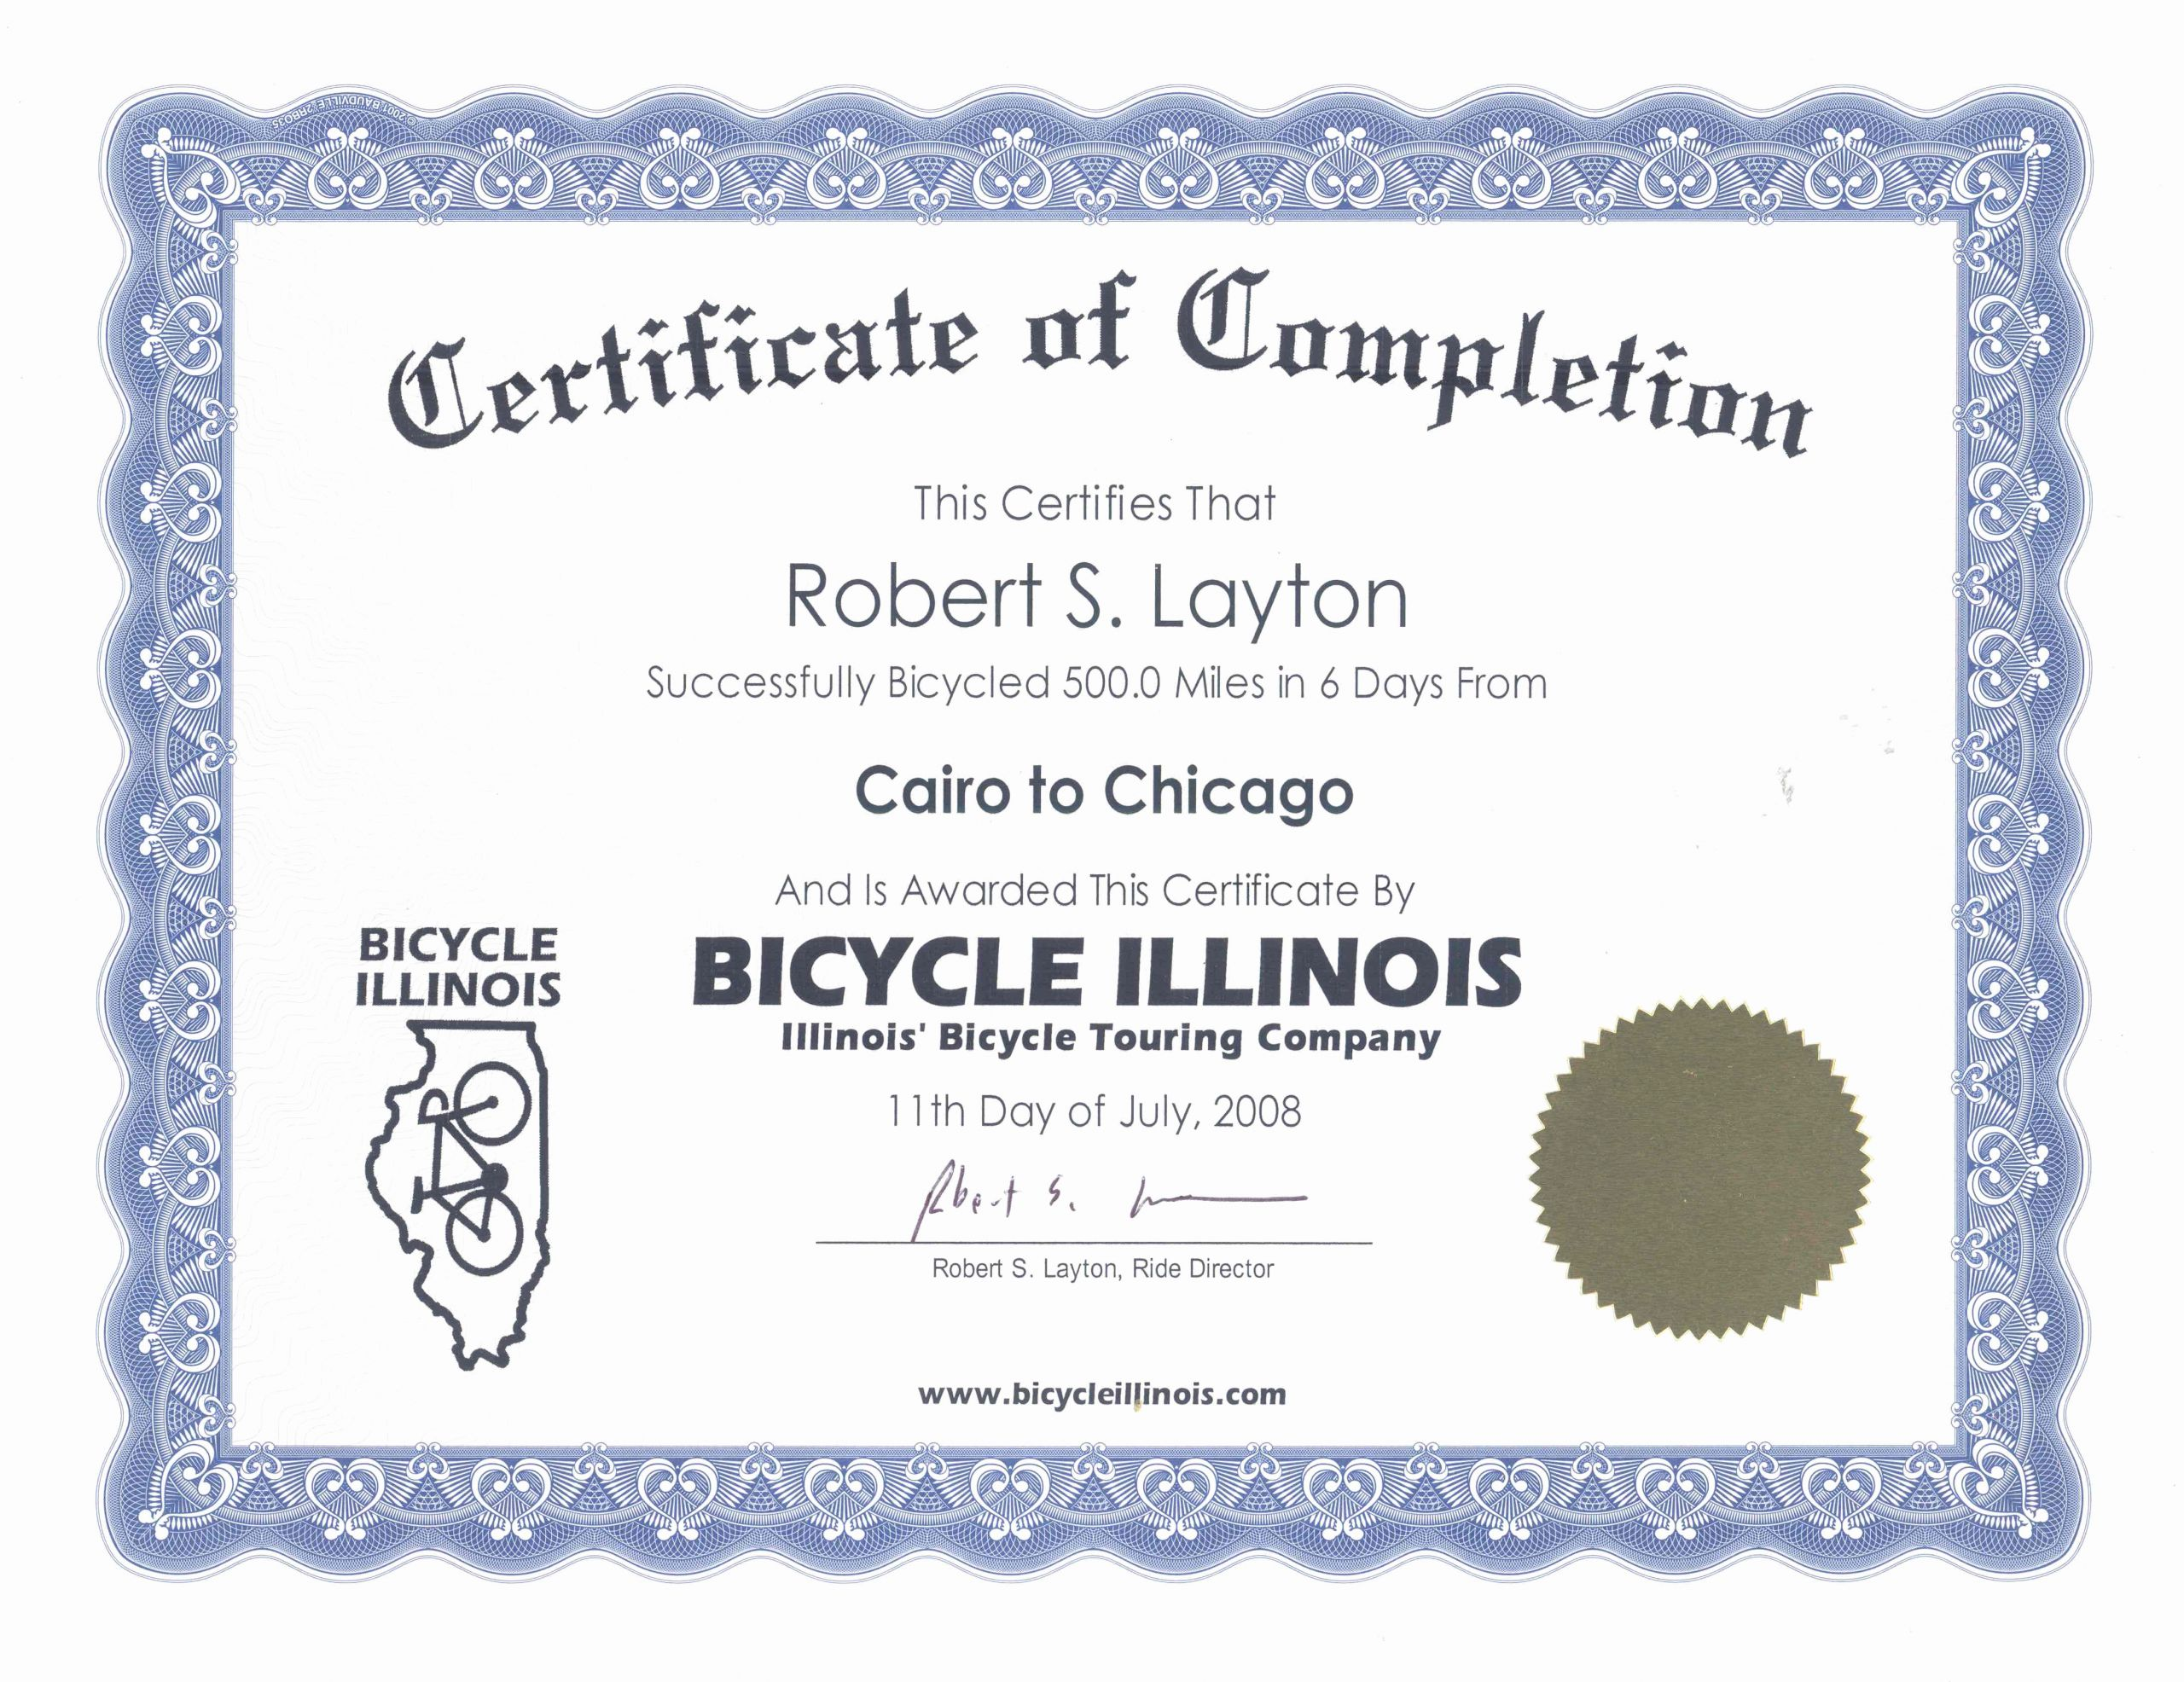 Certificate Of Completion Images Unique Bicycle Illinois Illinois Bicycle touring Pany